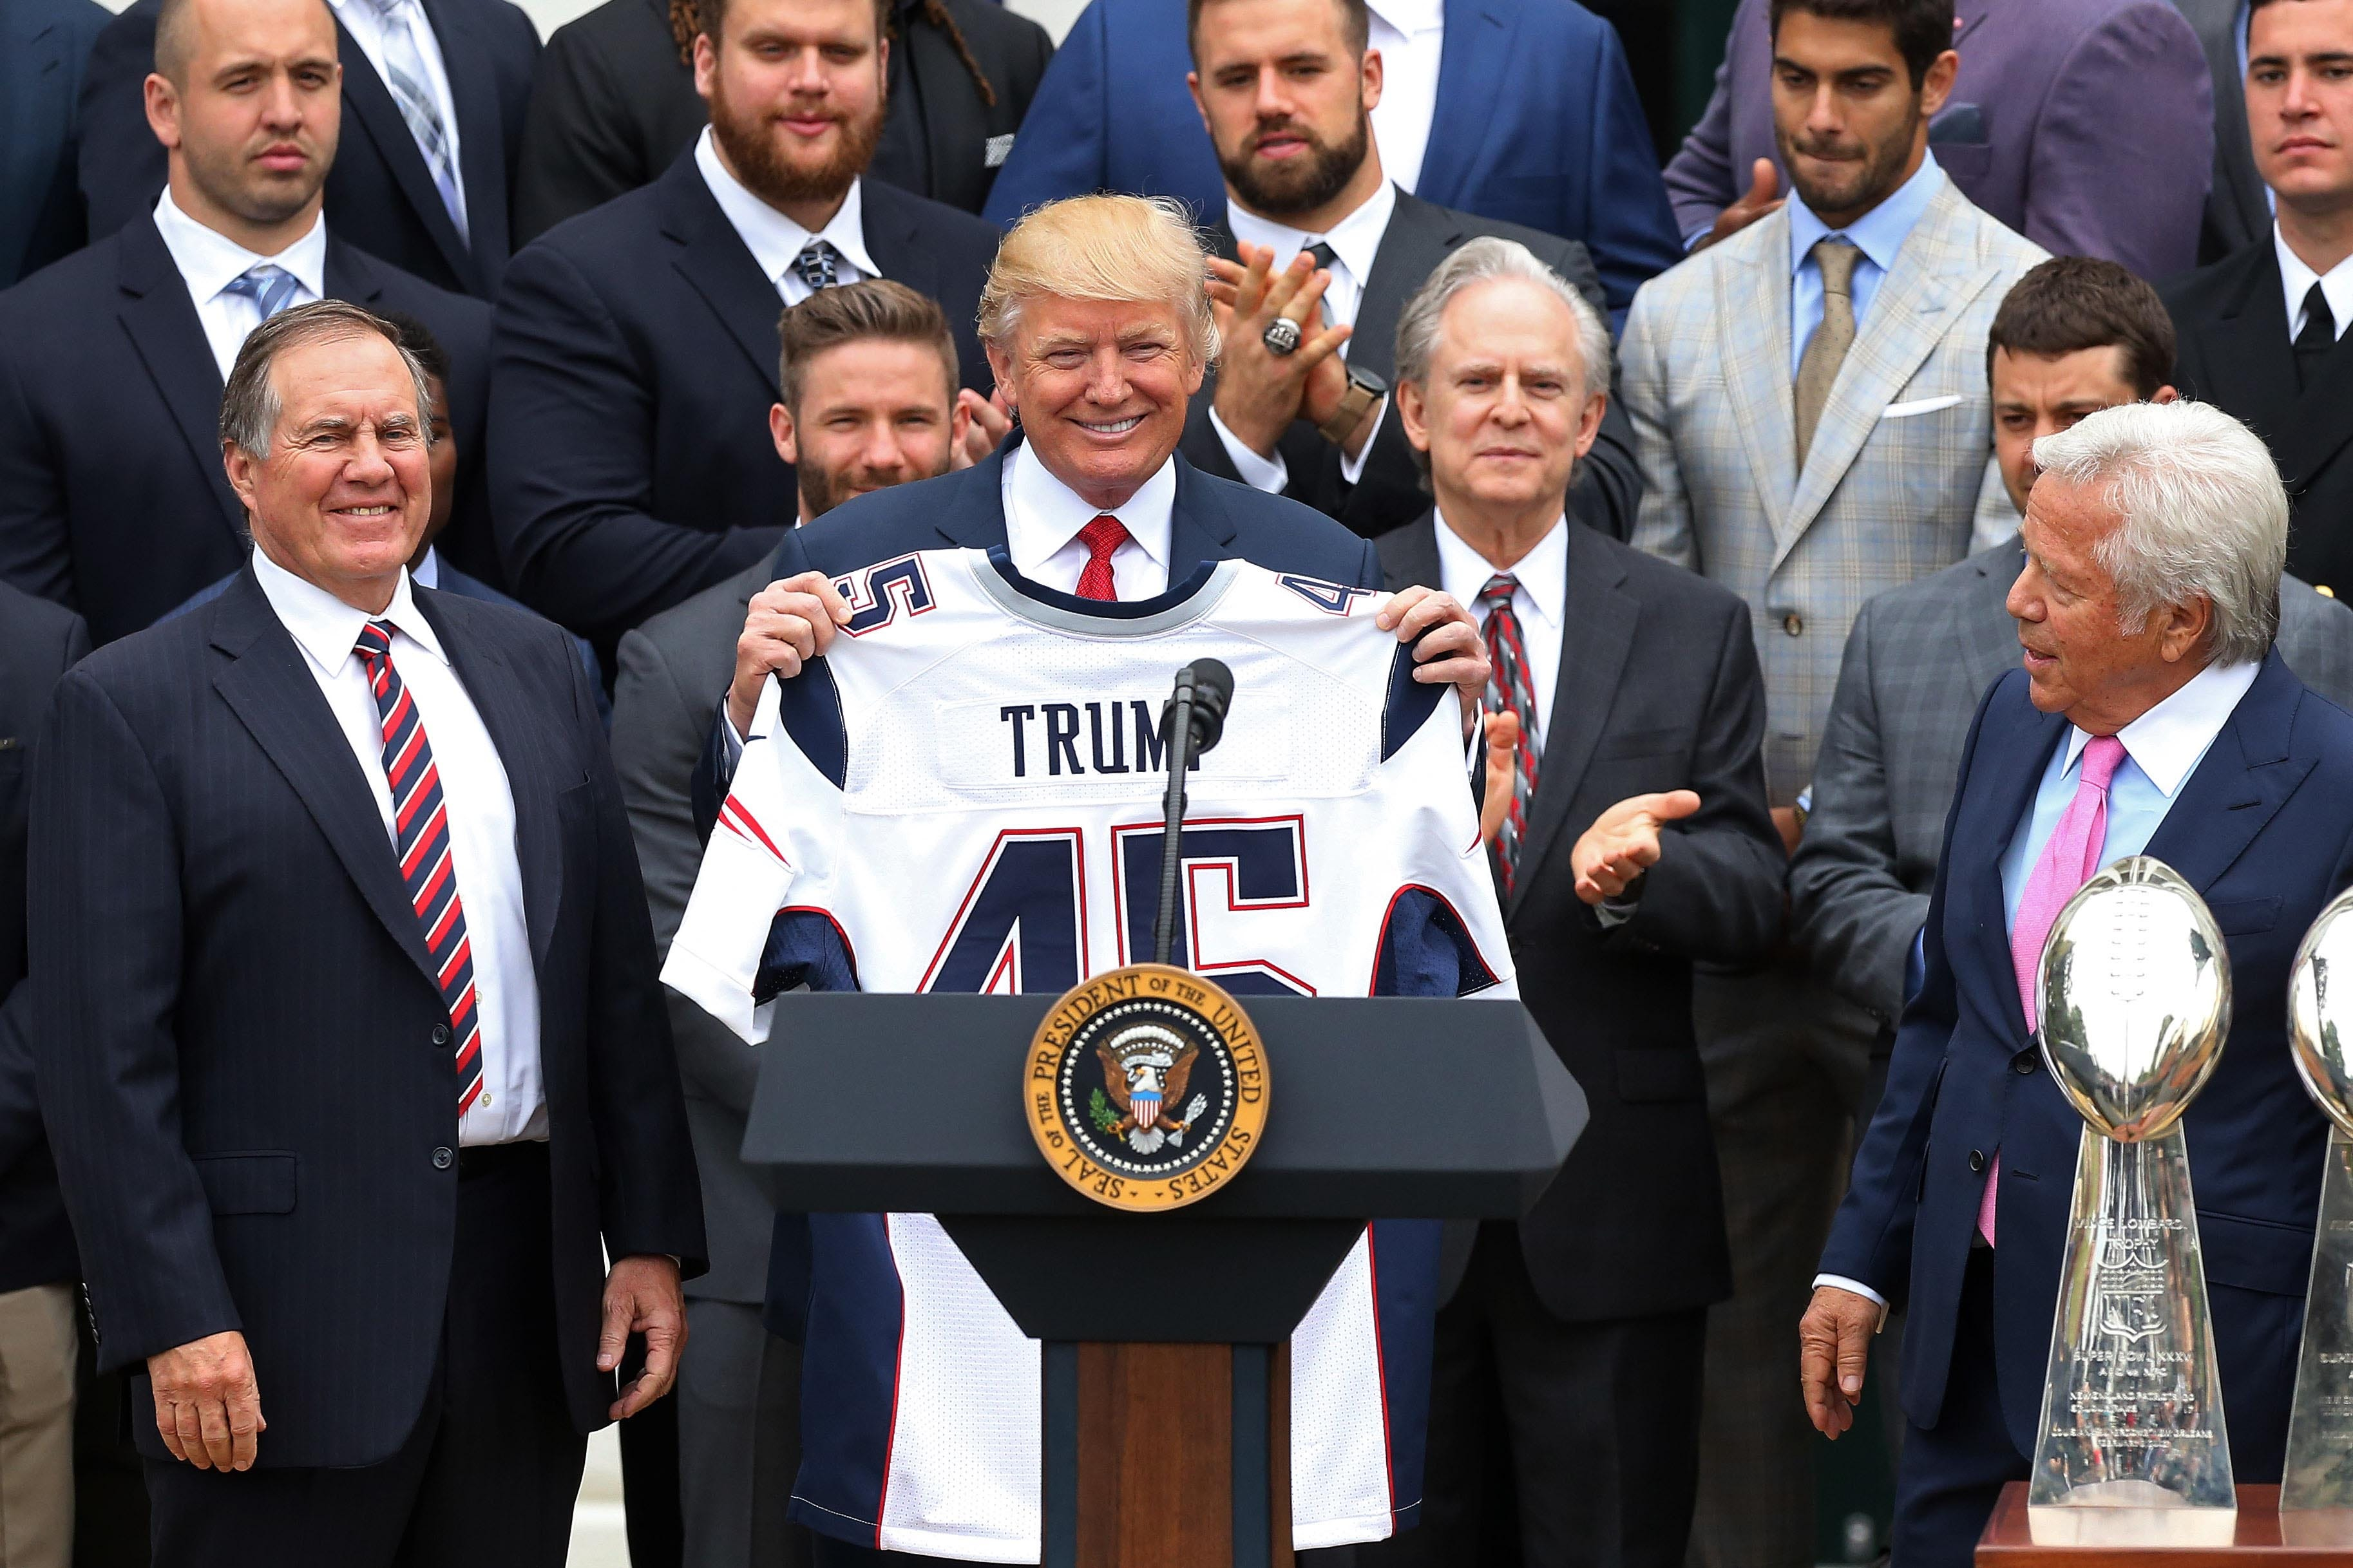 President Donald Trump would rather NFL not play if players kneel during anthem